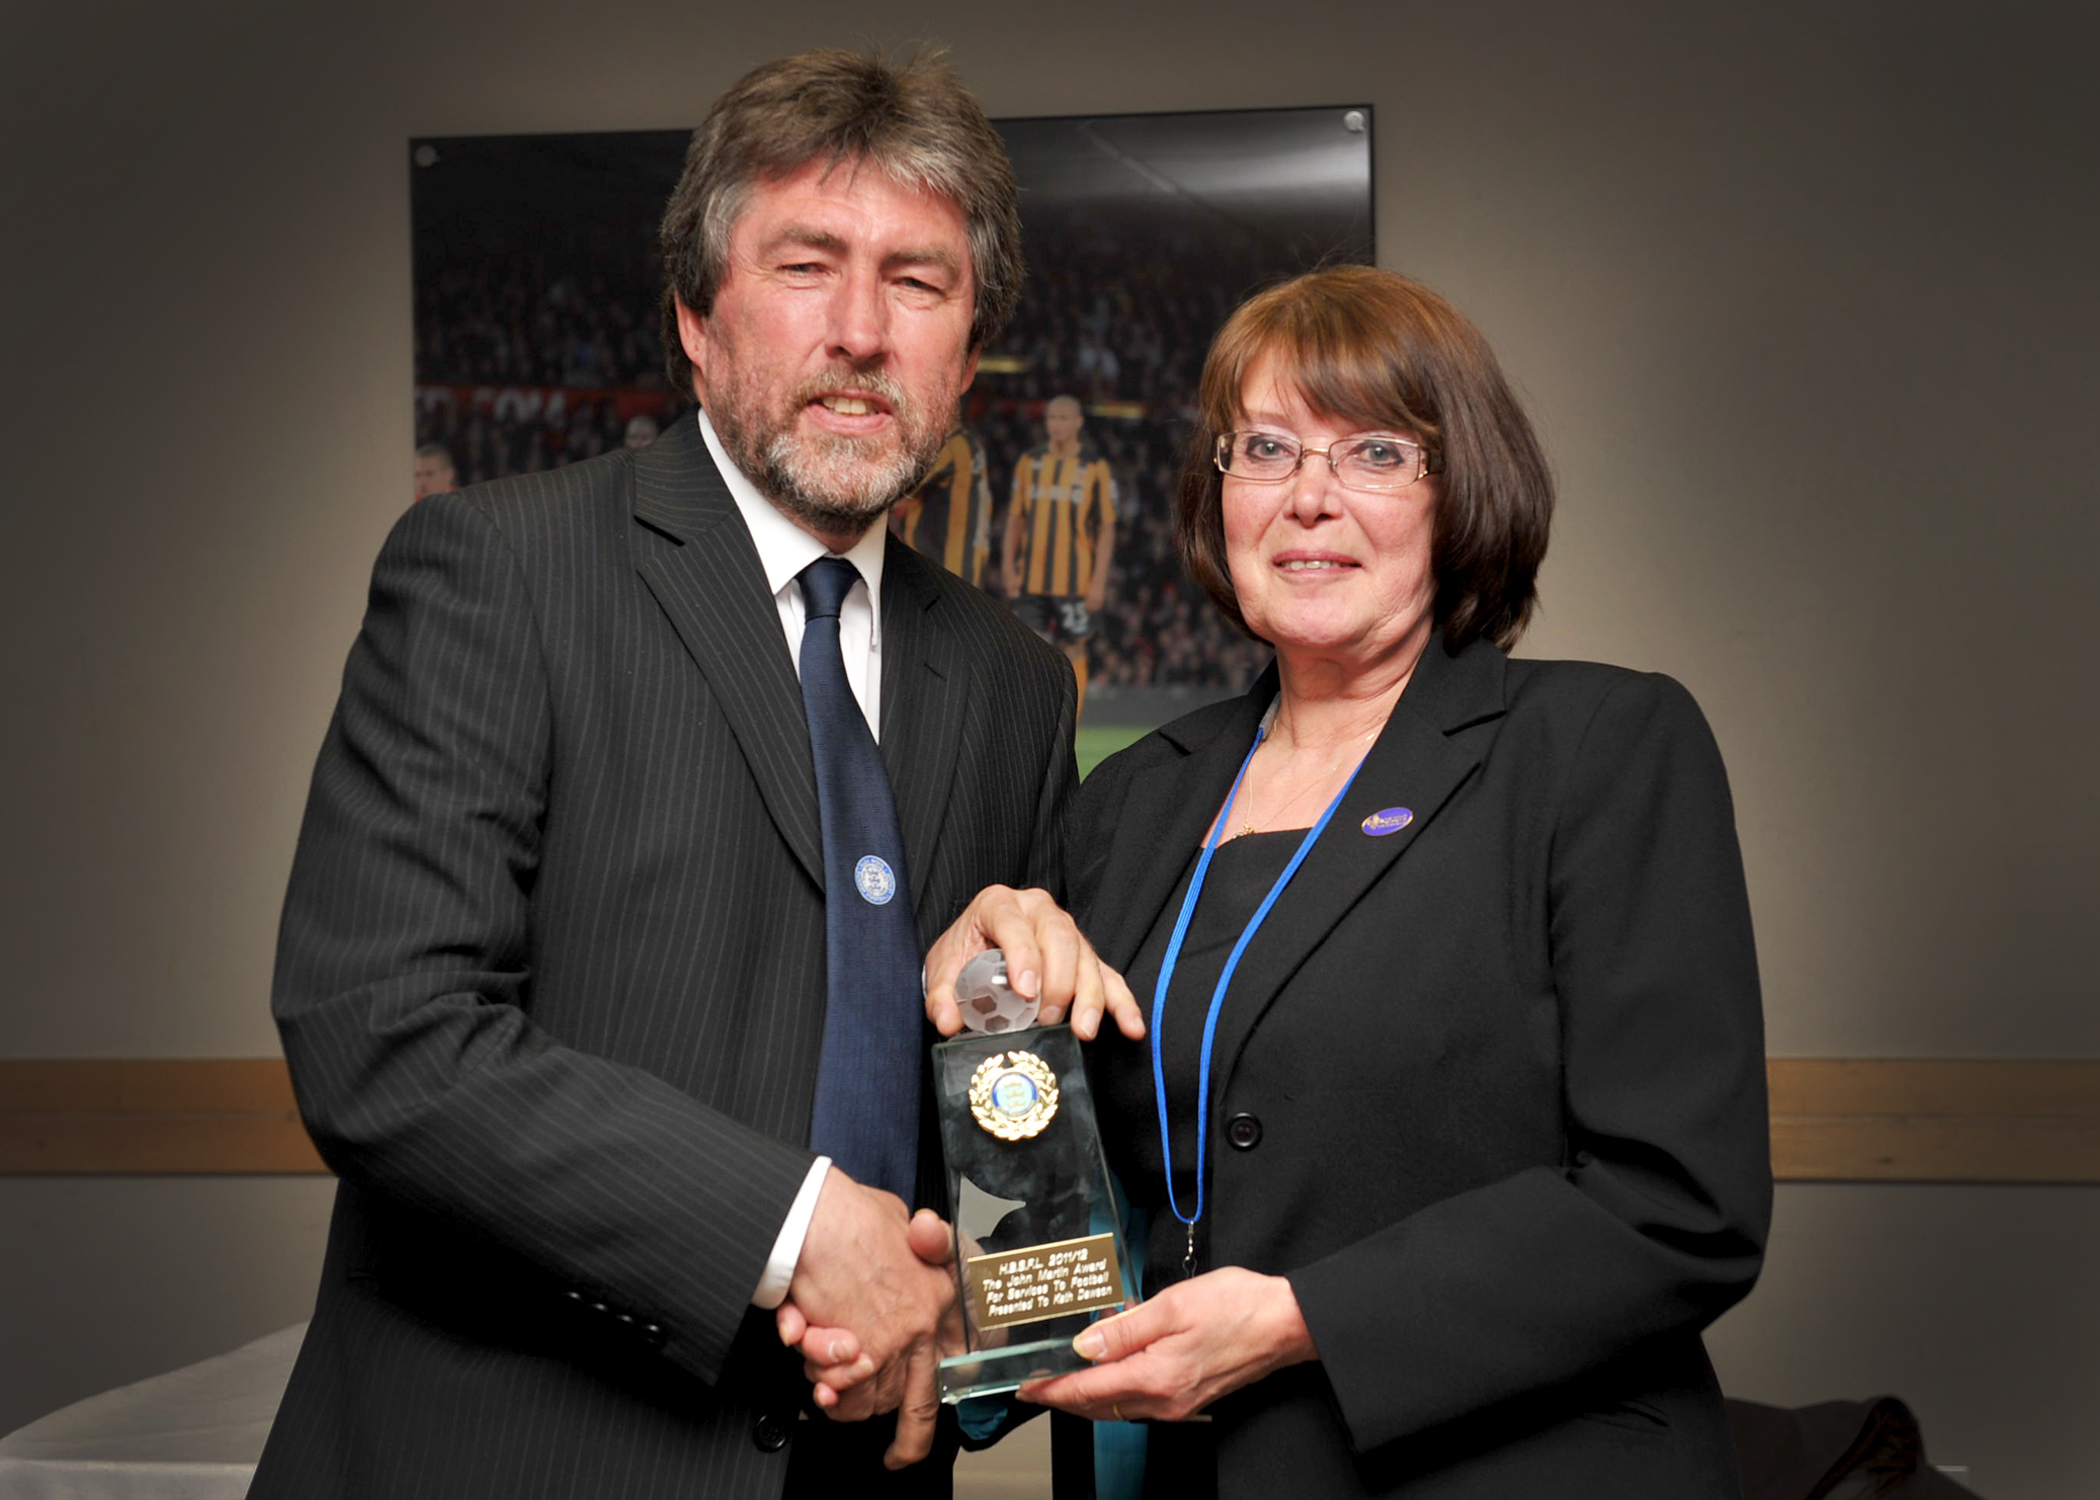 John Suddard presents Kath Dawson with John Martin Award 